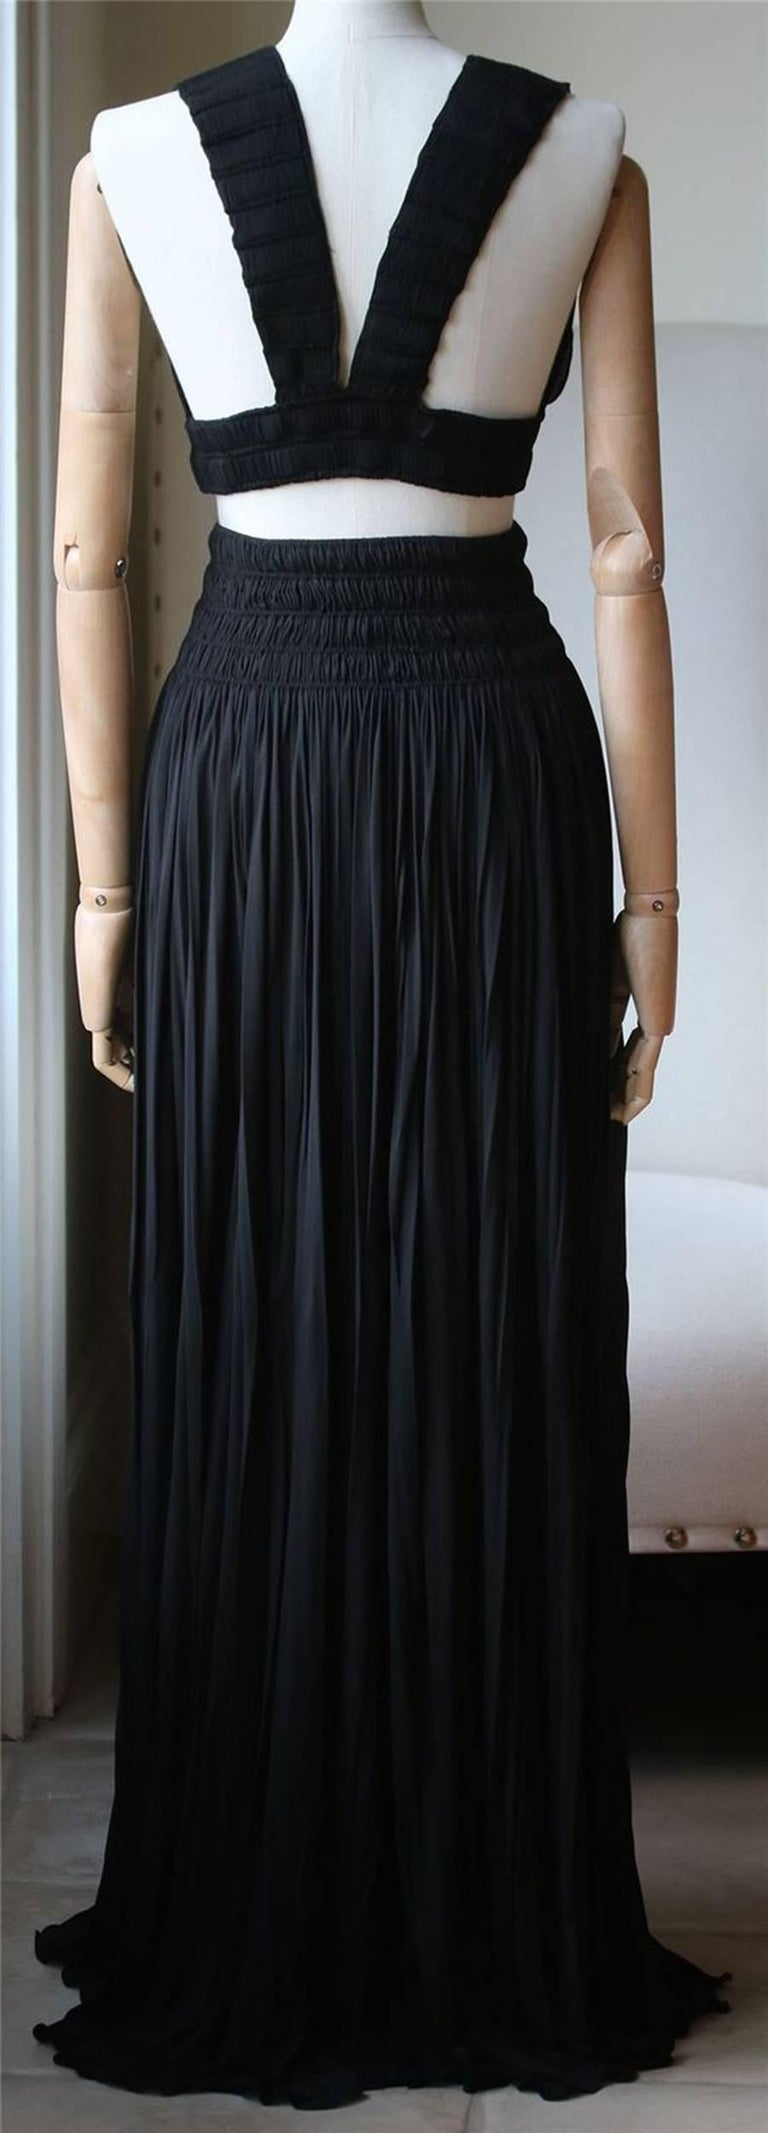 Black Azzedine Alaia Ruched Pleated Top and Skirt  For Sale